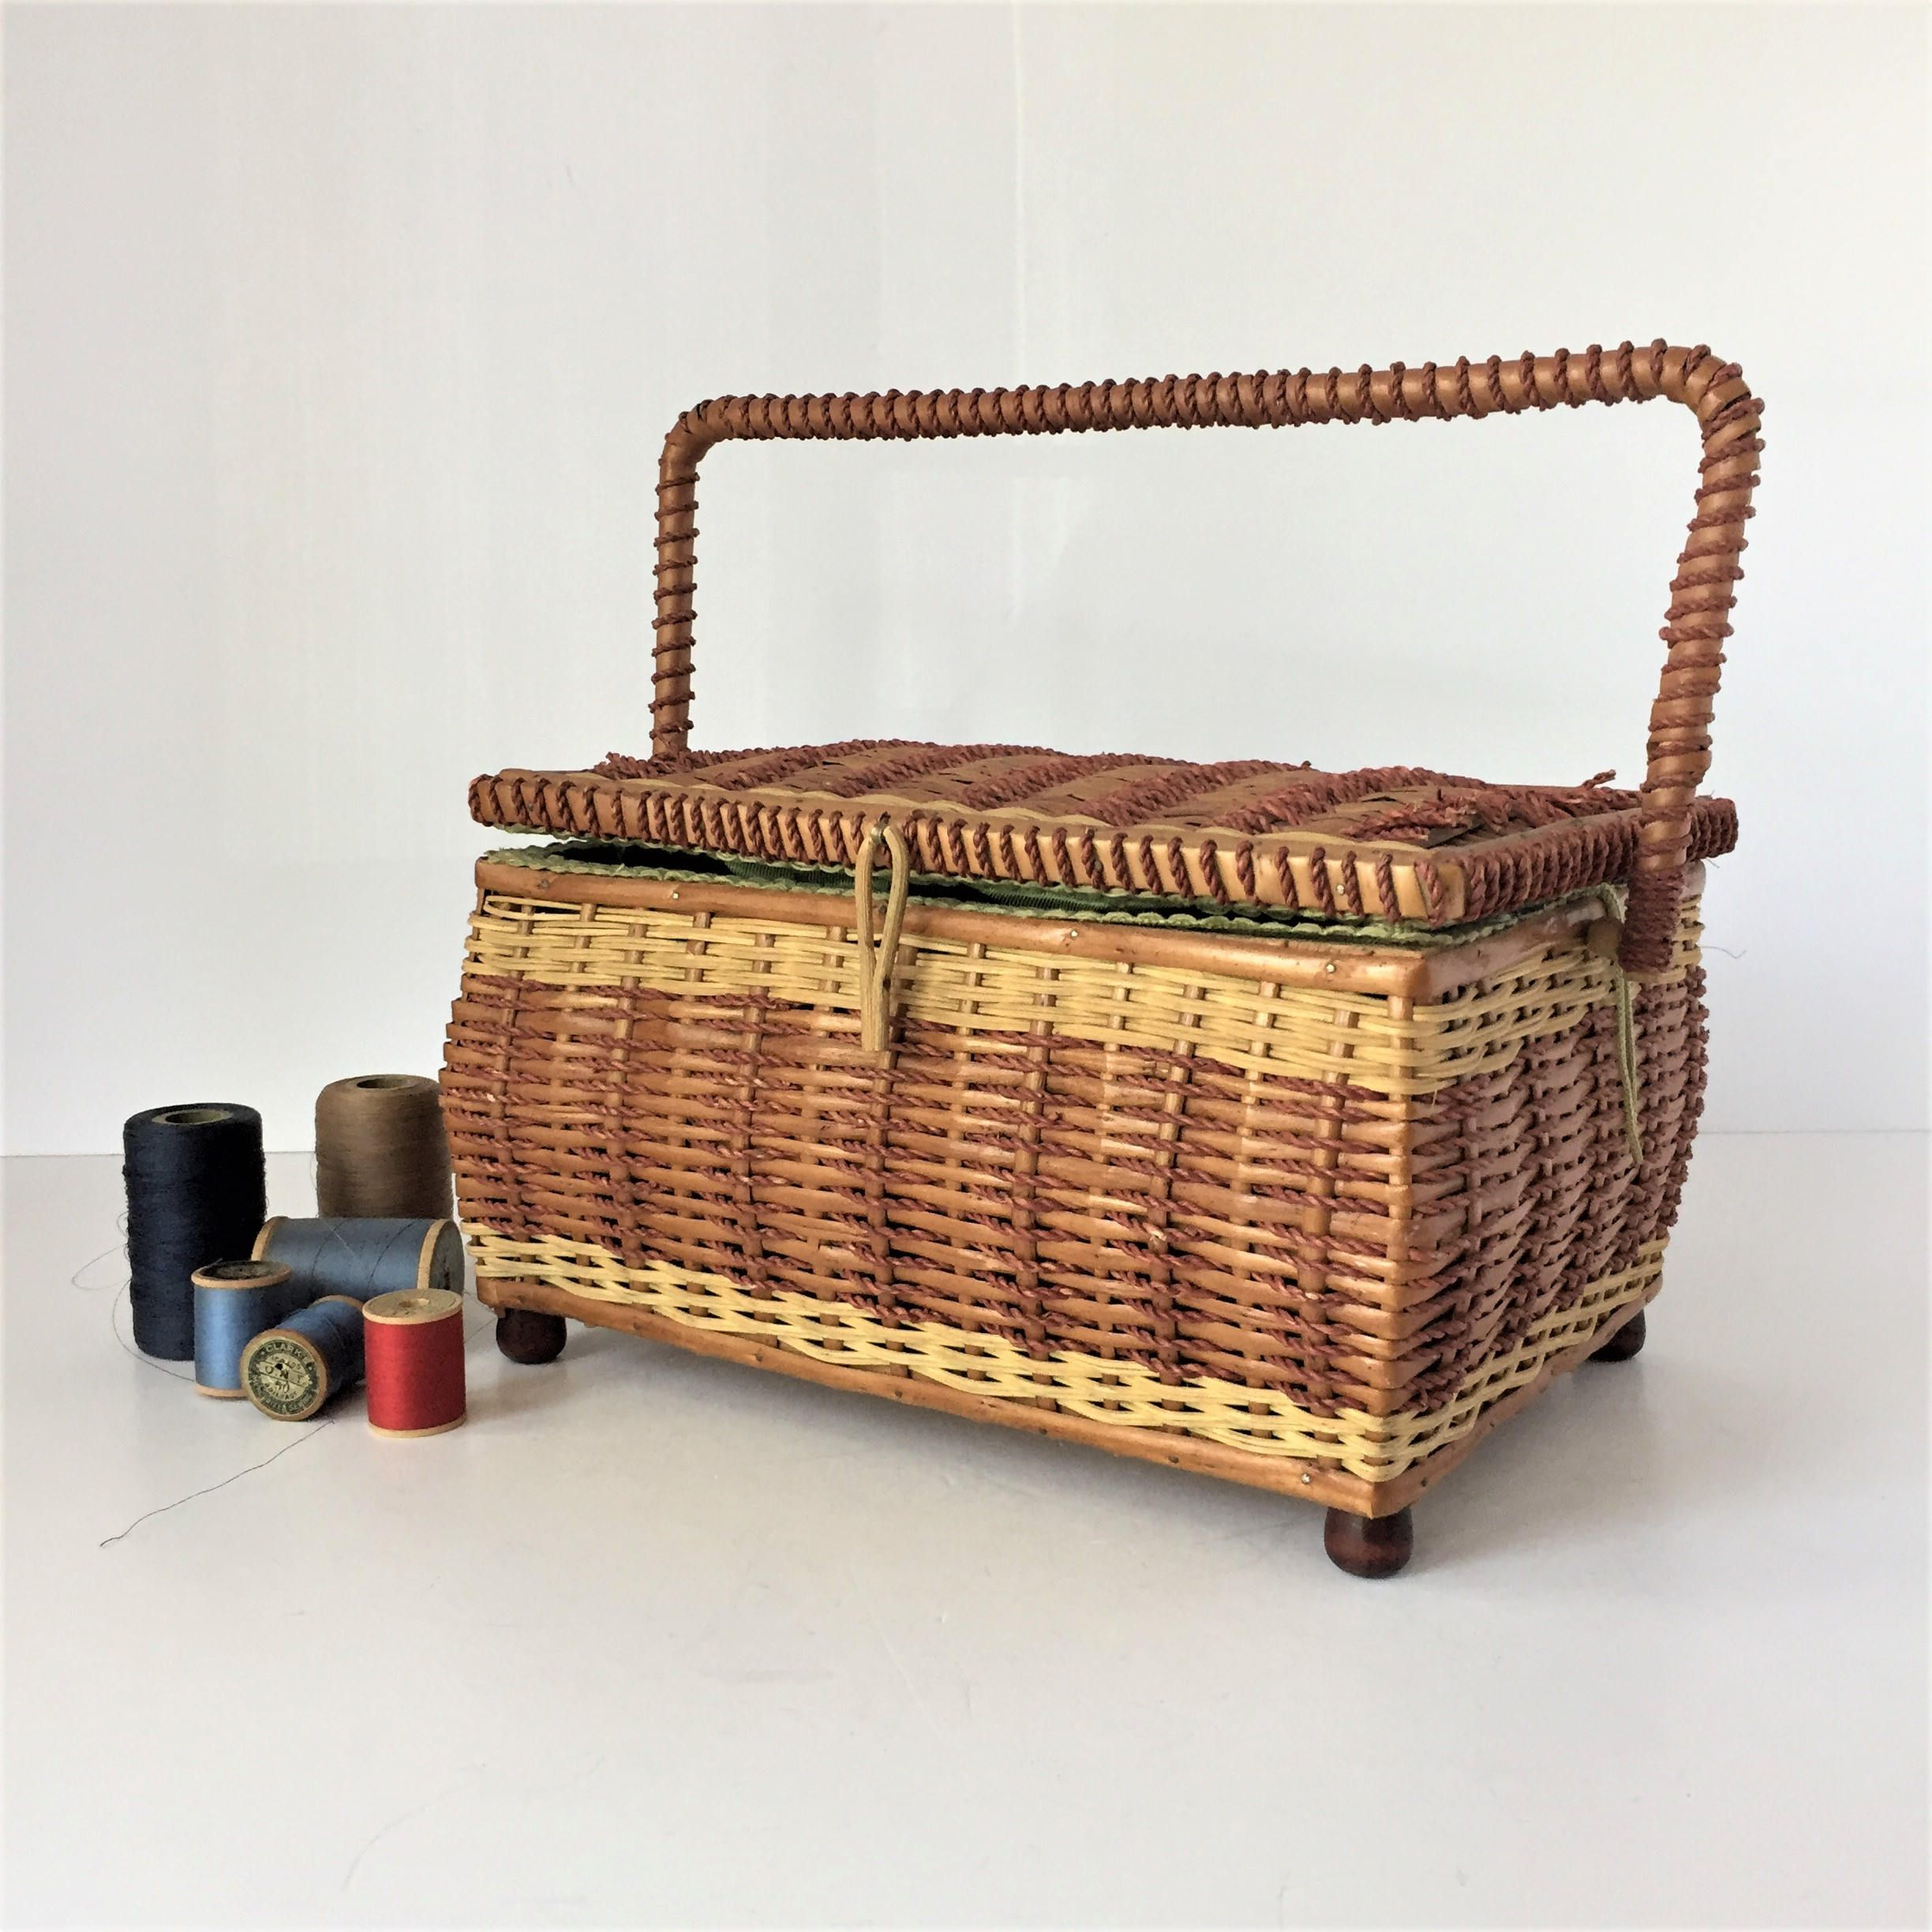 Vintage Sewing Basket, Wicker Sewing Box With Tray, Woven Basket